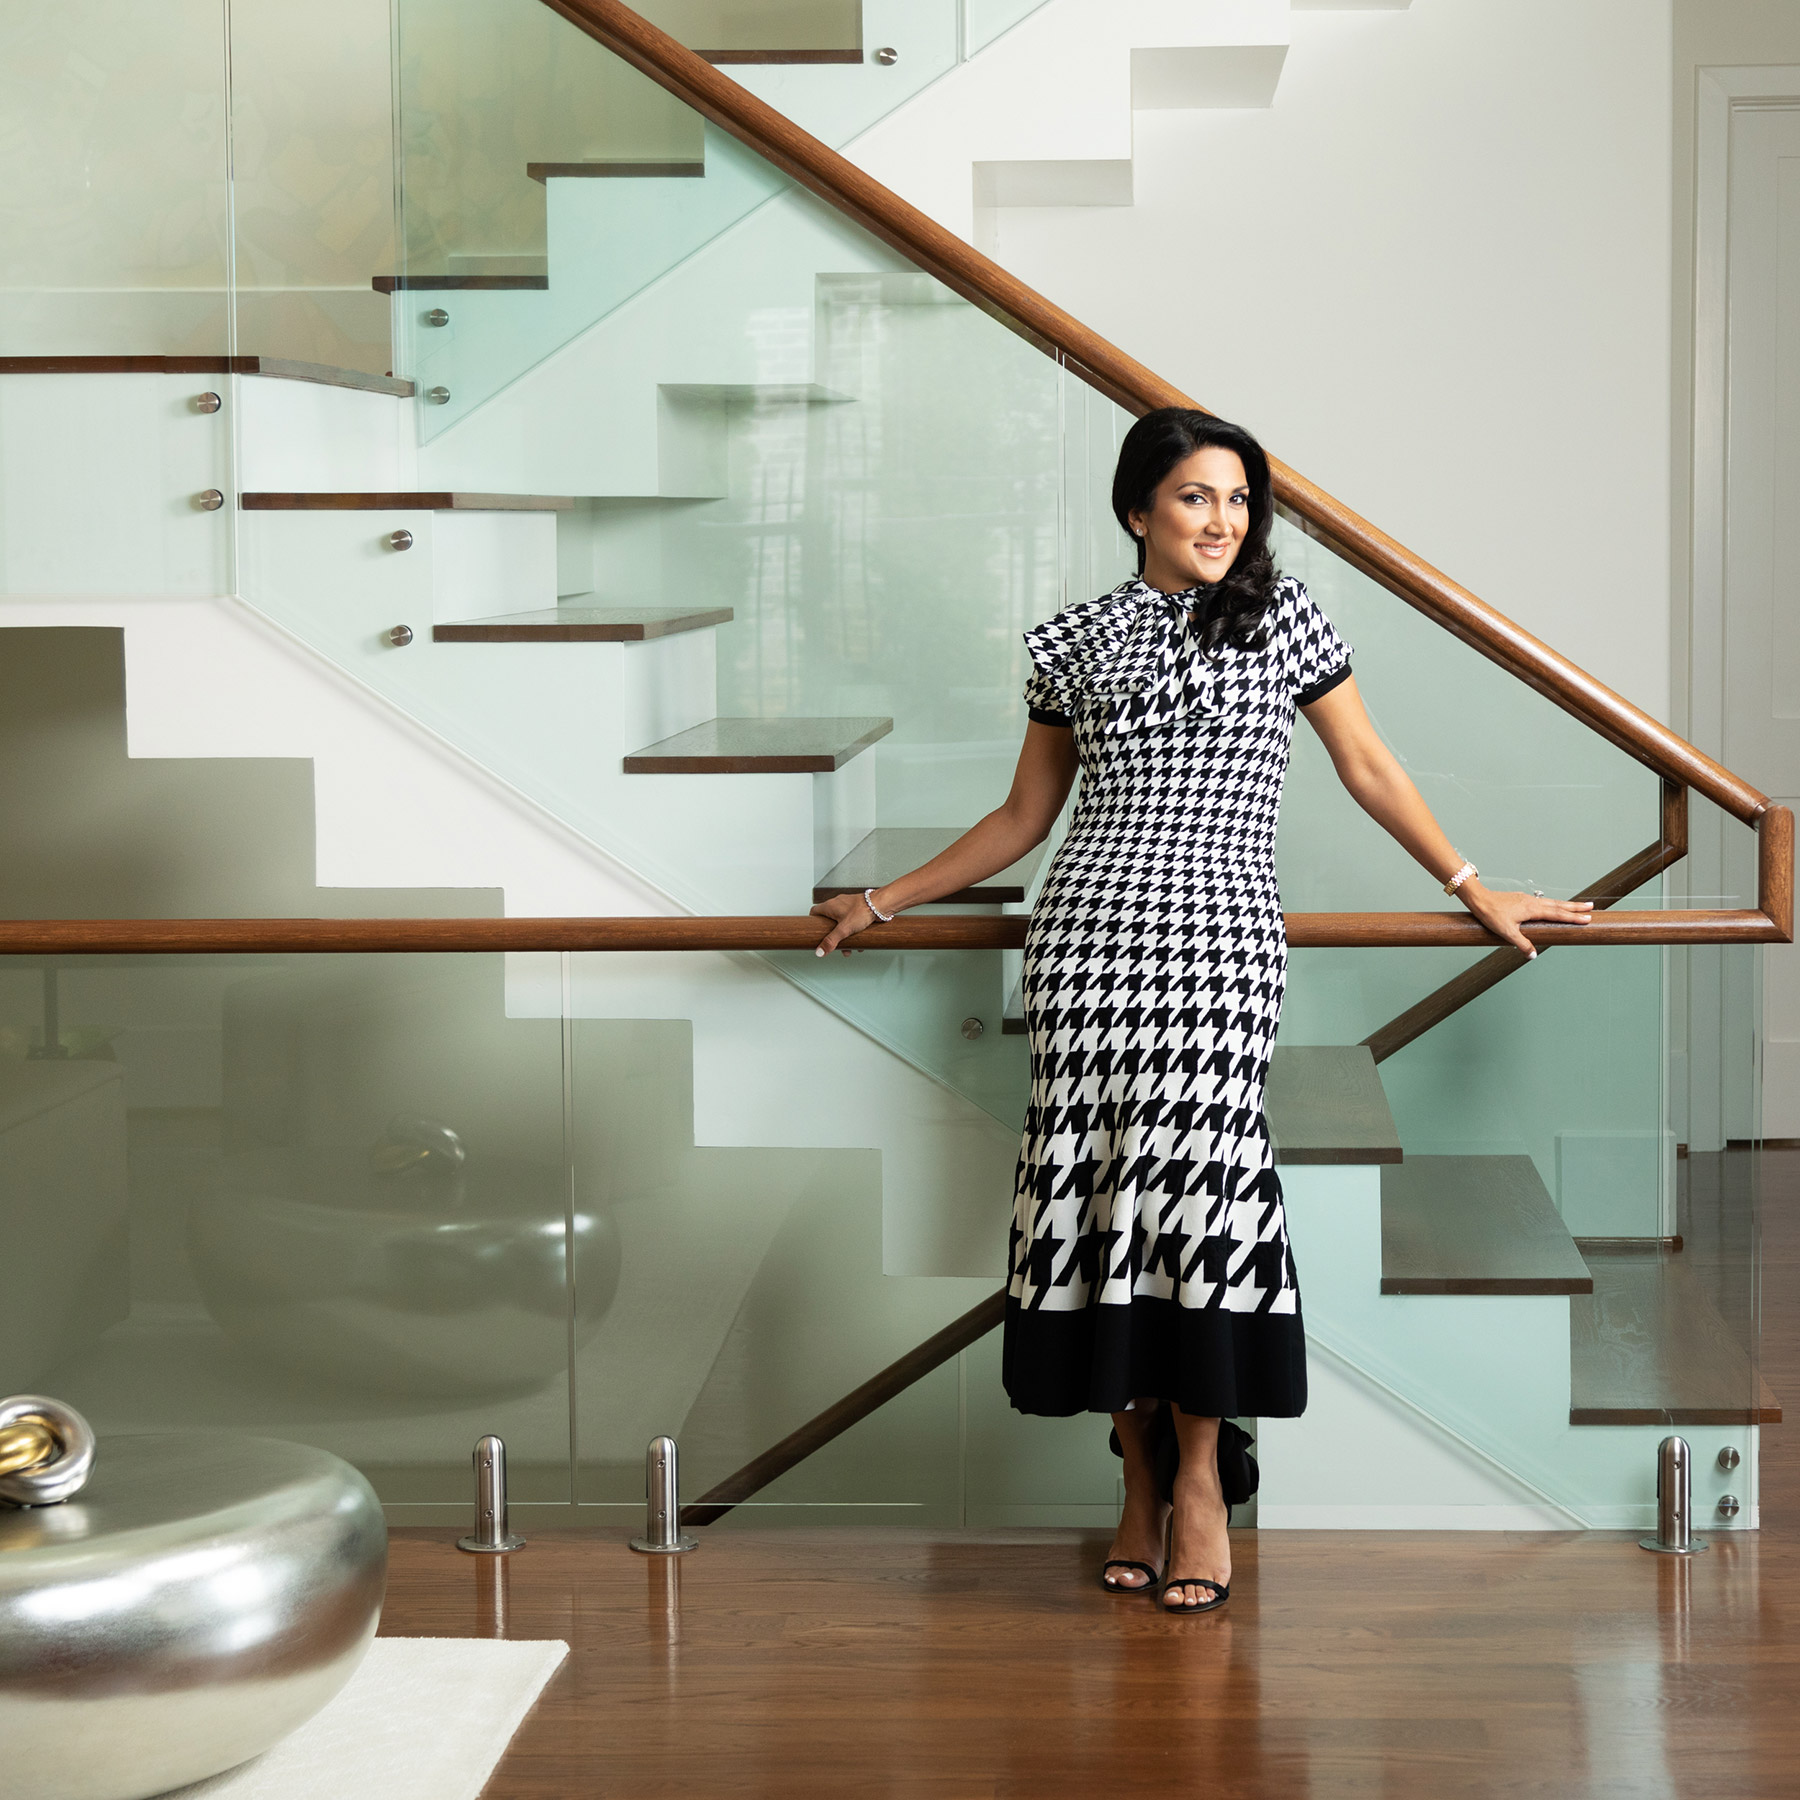 Women of Style 3 staircase and houndstooth